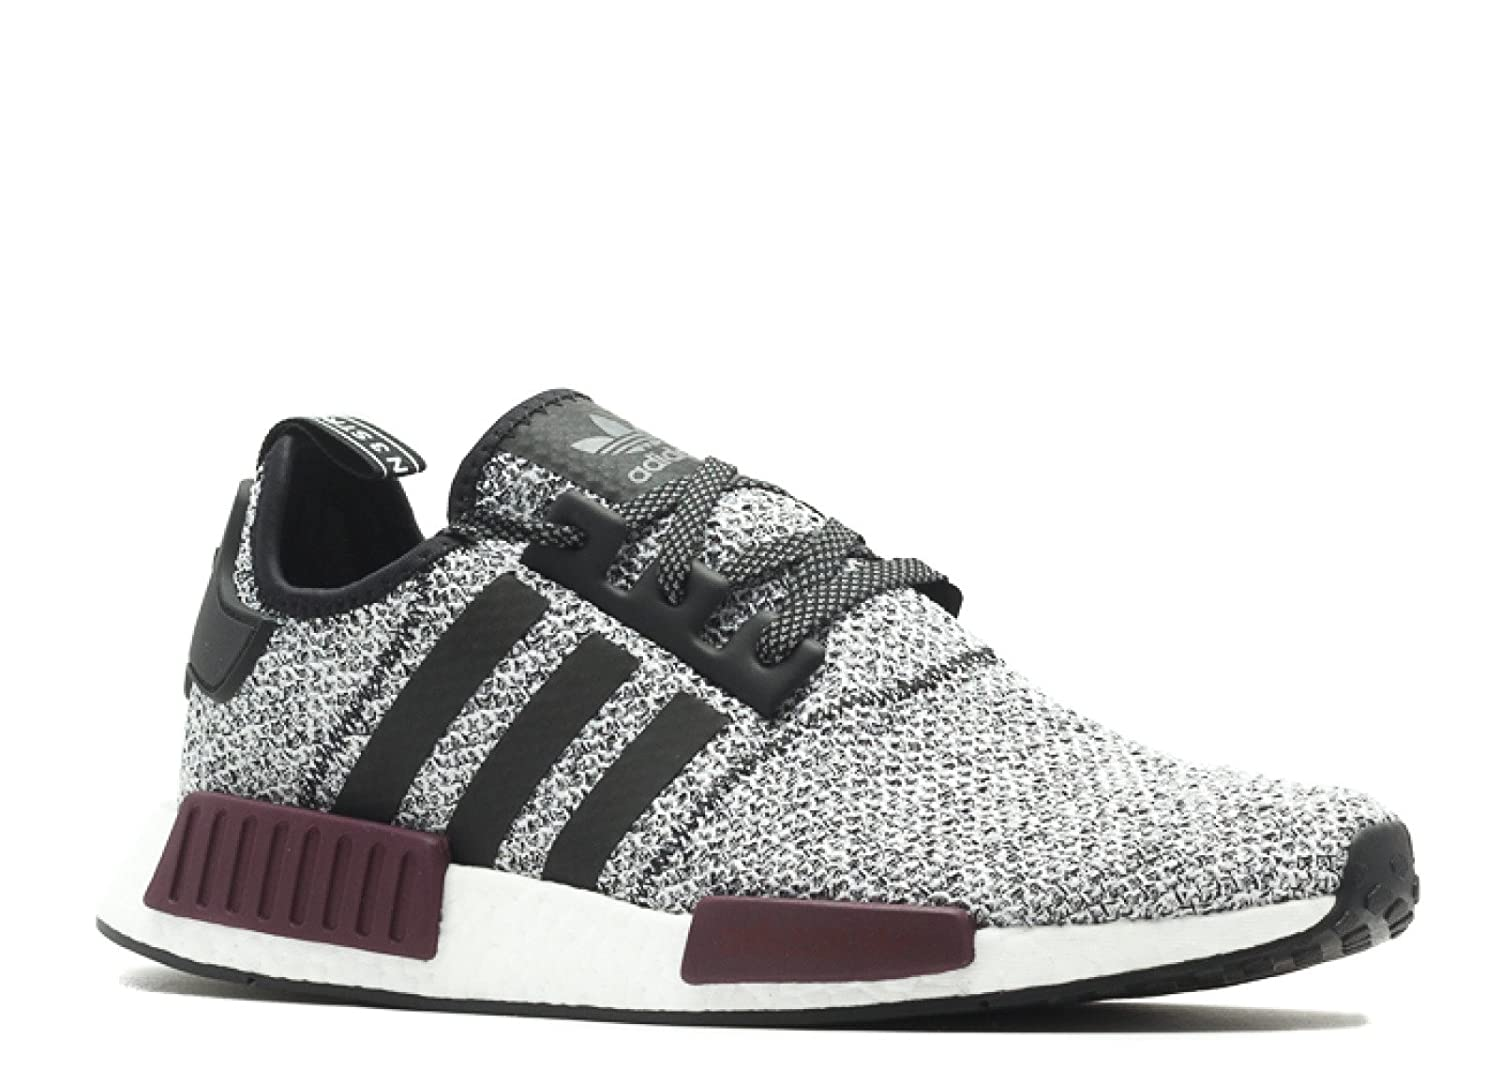 quality design 558f7 fd717 Amazon.com | adidas Men's Originals NMD R1 Black/Black ...